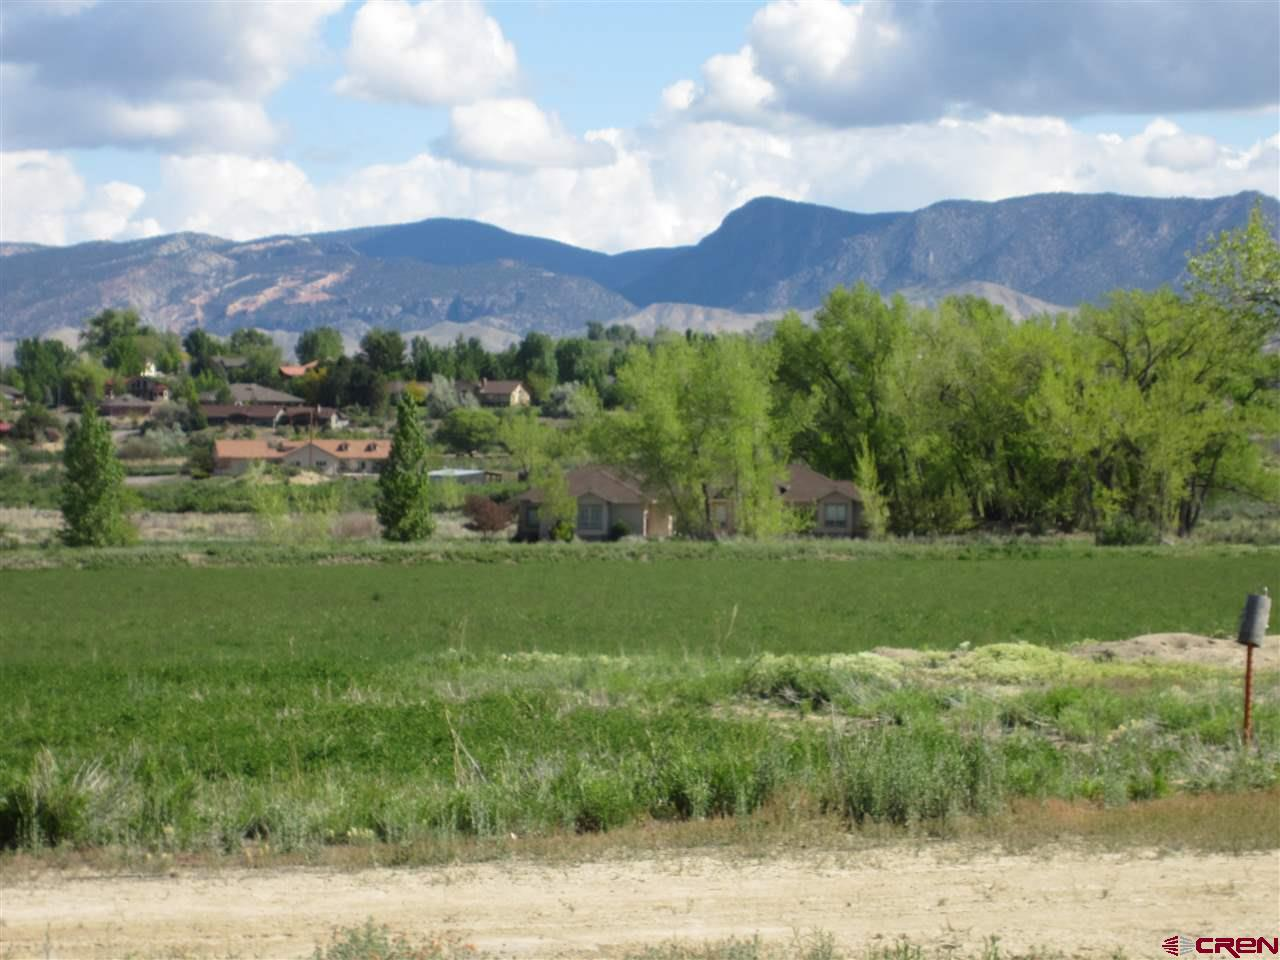 """CALLING ALL DEVELOPERS!  This is prime development property that is in an """"ideal"""" location.  This 40 acres is surrounded by the prestigious Brown Ranch Development in Montrose, Colorado.  Beautiful homes line this property on 3 sides. Perfect opportunity to invest and create synergy with a wonderful subdivision in this prime spot. Water and sewer are in the road to the west. There would be a great opportunity to annex this piece of property into the city.  Think of they type of lovely homes that would be popular in the area such as patio homes as well as higher end homes. There is plenty of irrigation water to distribute to the area and the surrounding views and layout of the land are just another plus. Homes are needed in the area so this is a great opportunity to get on the train to a successful subdivision. Come see this property you will see the value and love the proximity of such a rare piece of property."""